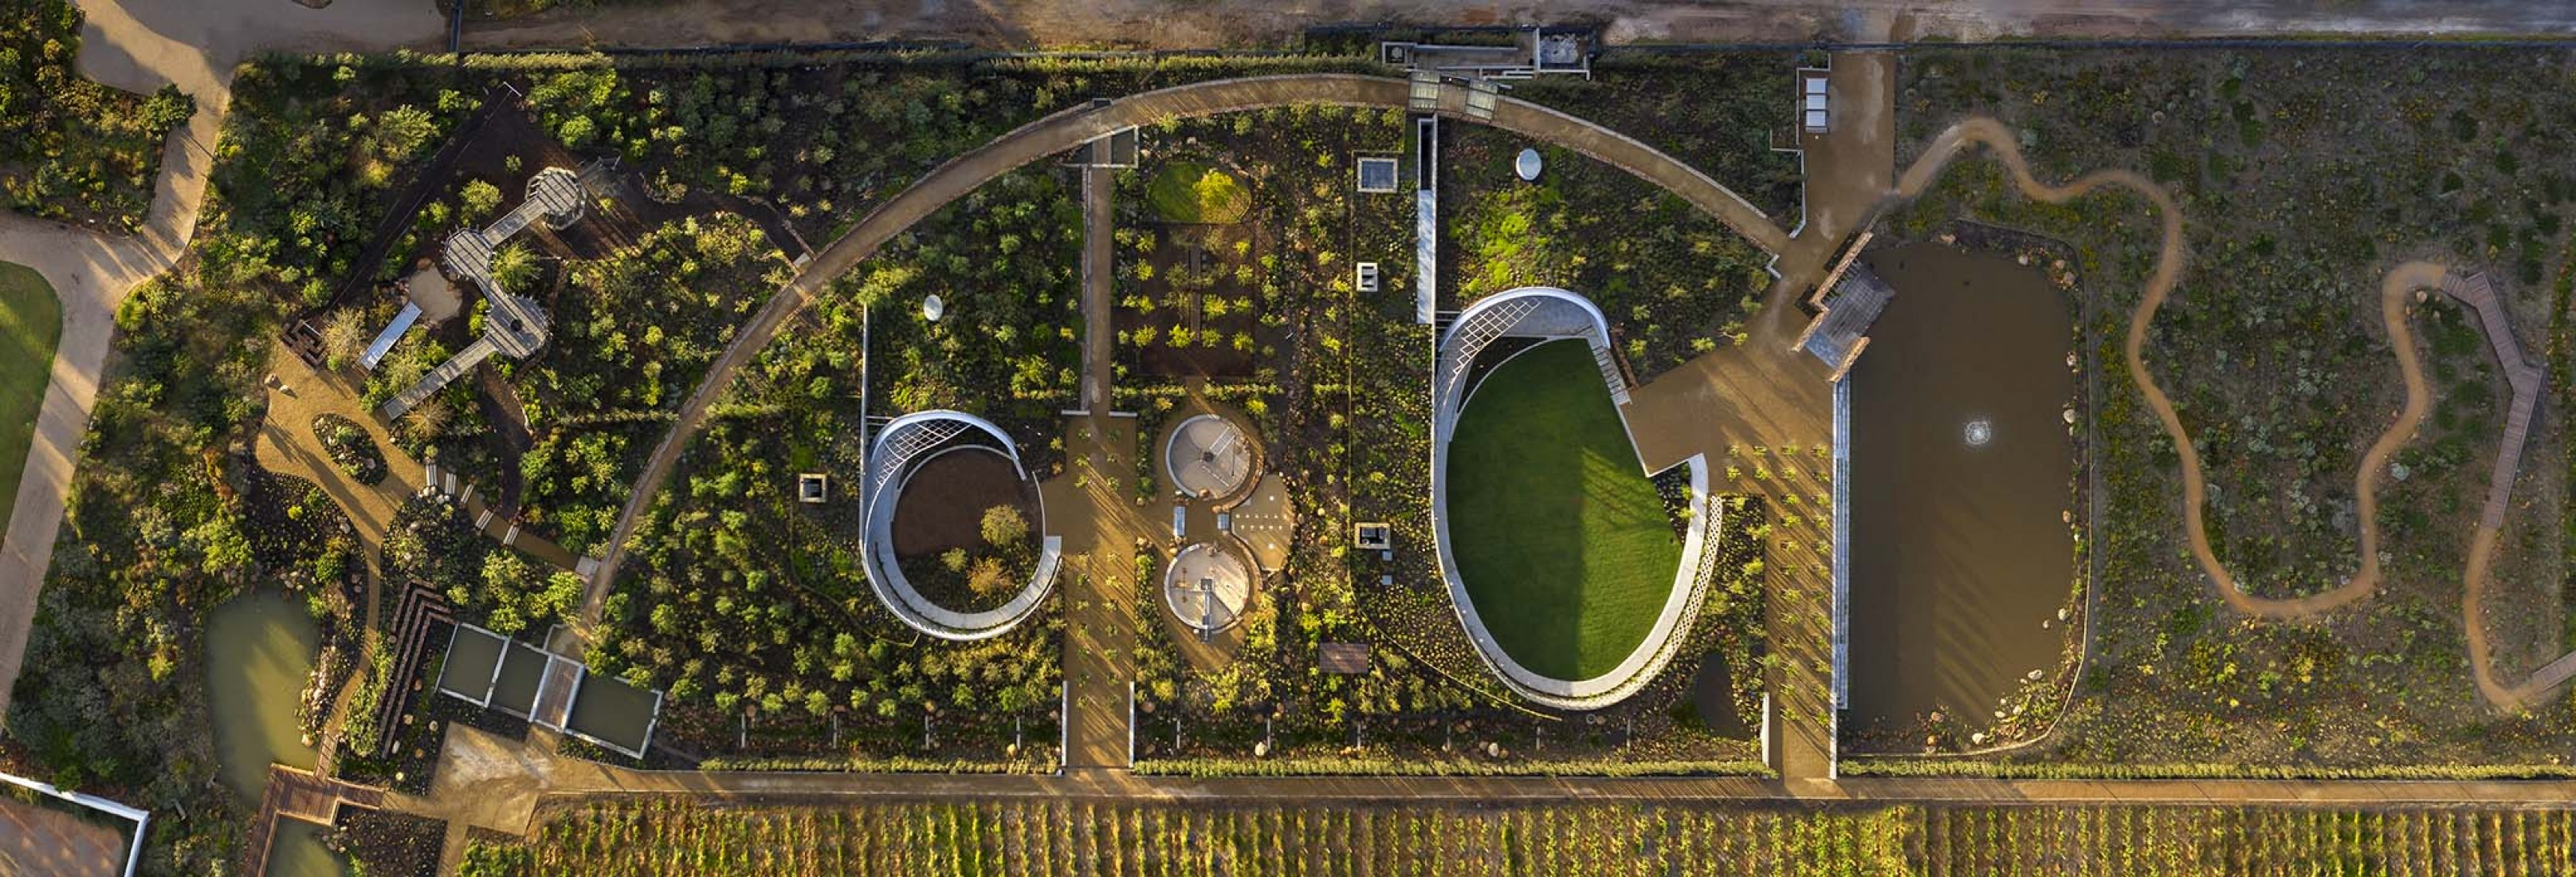 Garden Cafe by Steyn Studio, Meyer & Associates and Square One Landscape Architects. Photograph by Dook